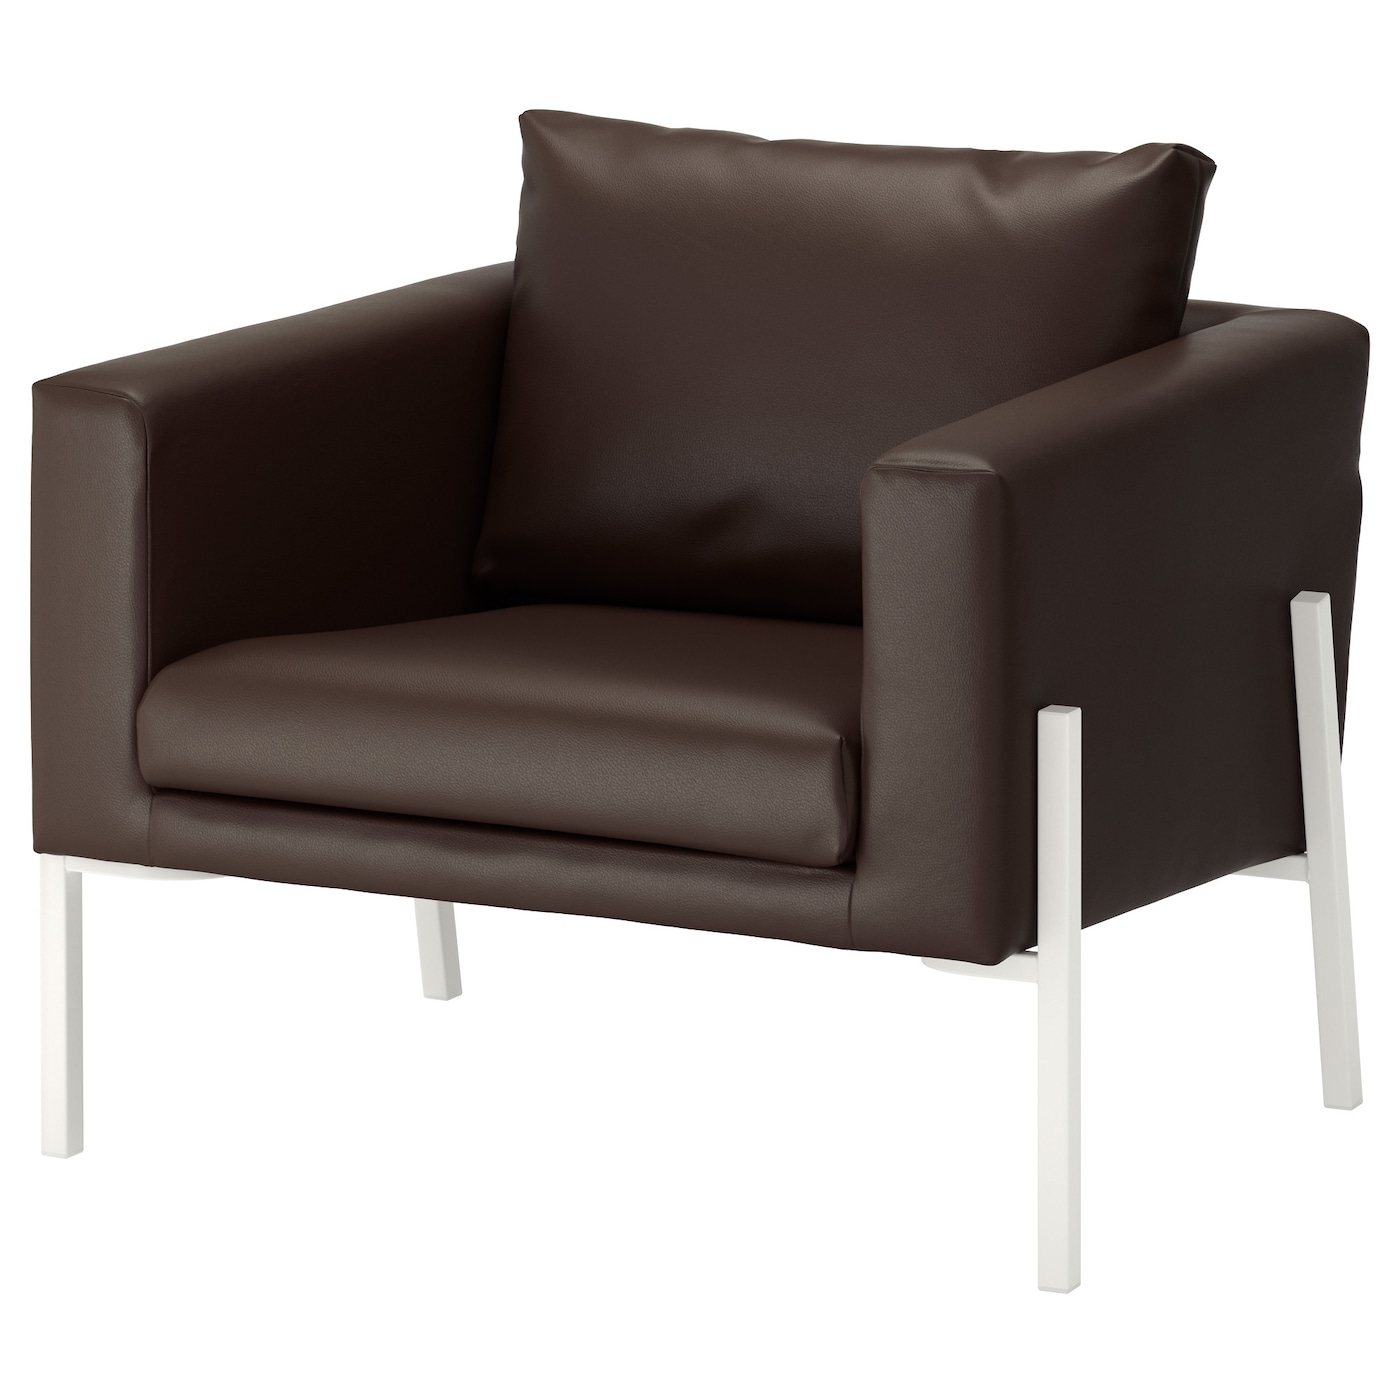 IKEA KOARP armchair 10 year guarantee. Read about the terms in the guarantee brochure.